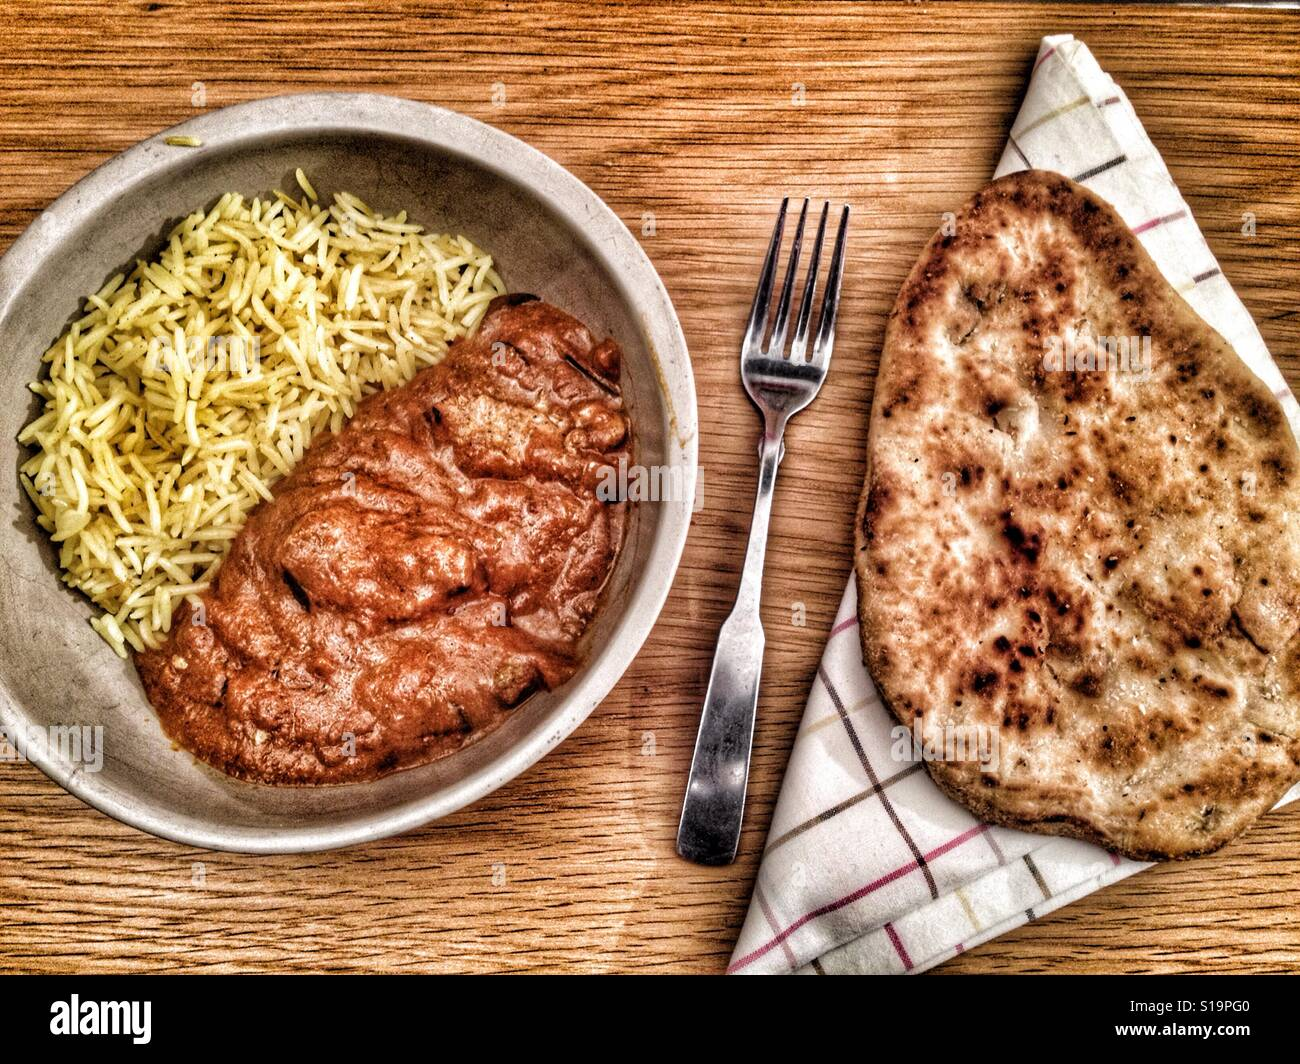 Coop Indian chicken Madras with Pilau rice and Naan bread - Stock Image